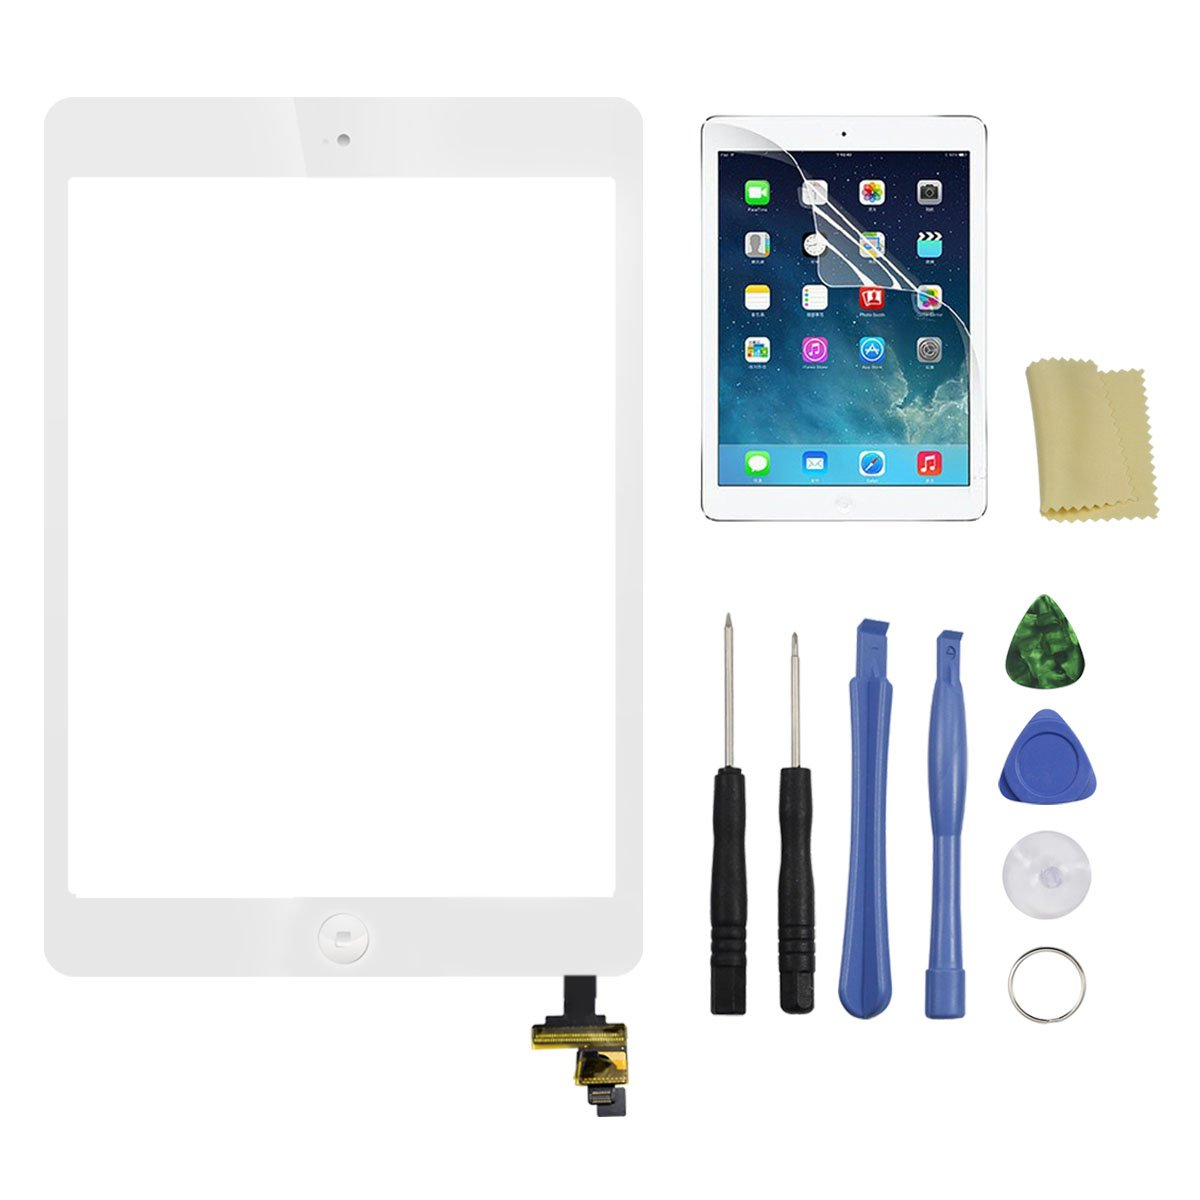 Ipad mini touch screen not working properly